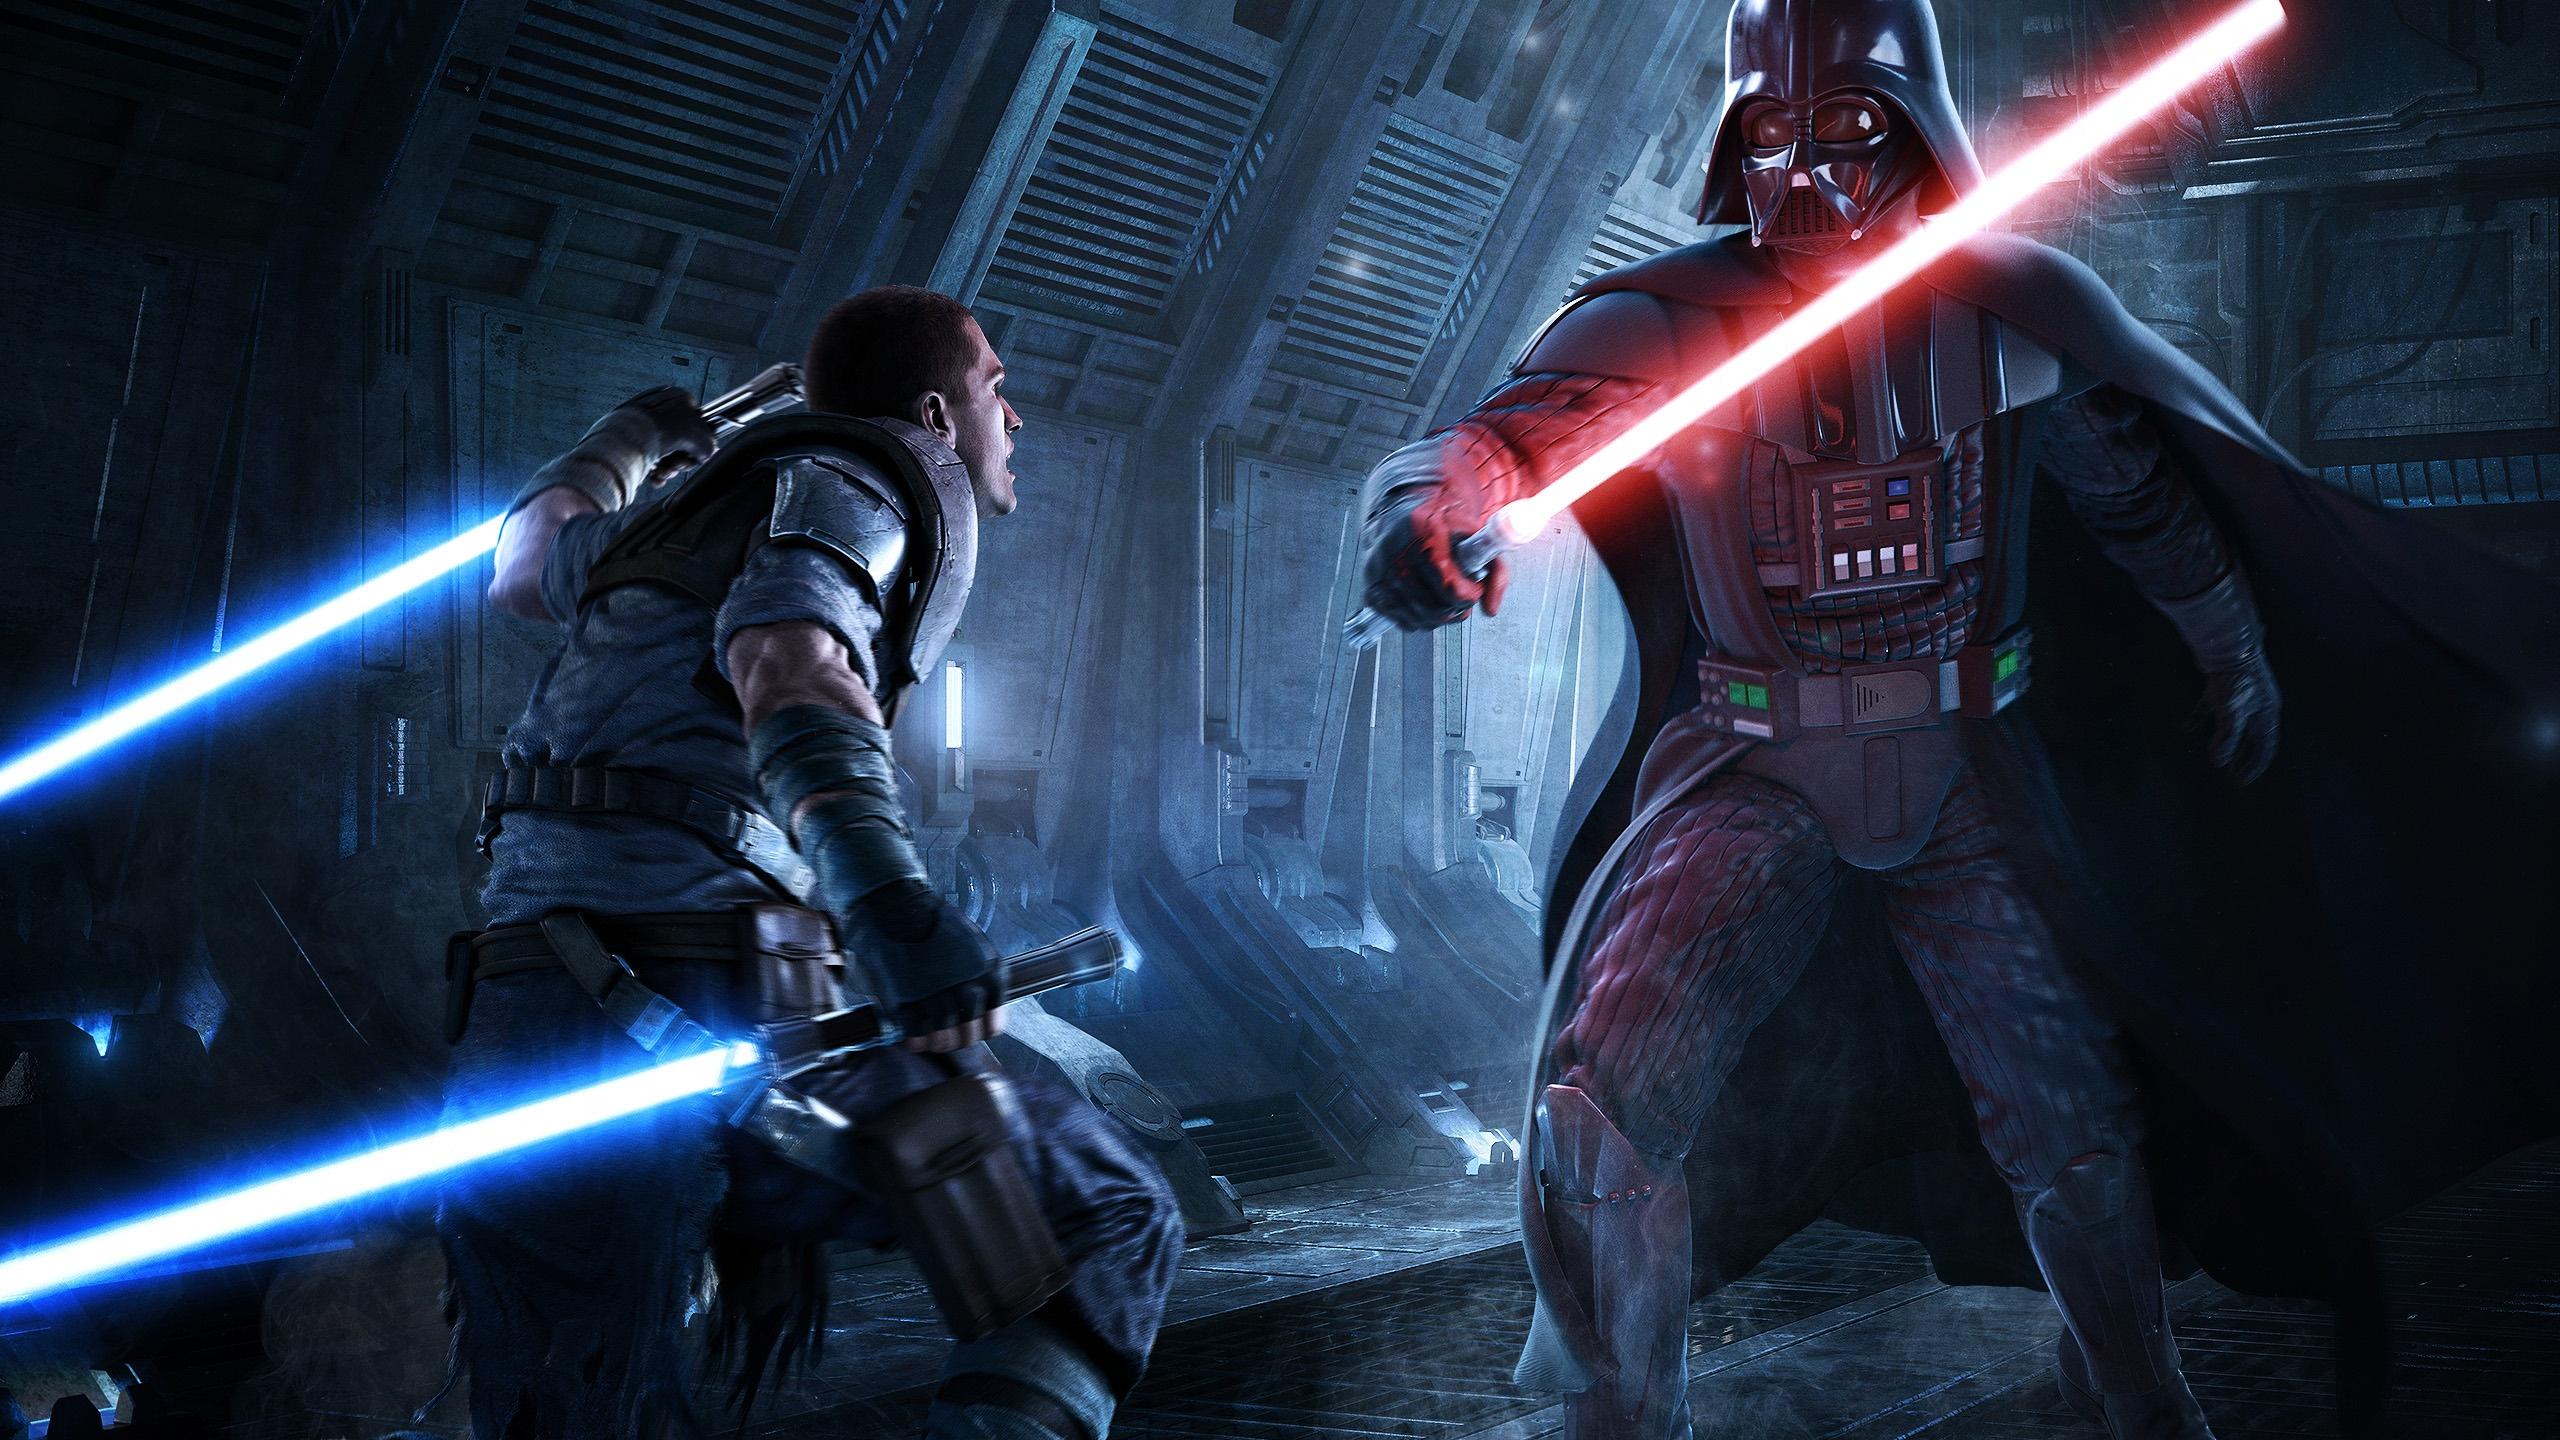 2560x1440 Star Wars Force Unleashed 2 Desktop Pc And Mac Wallpaper